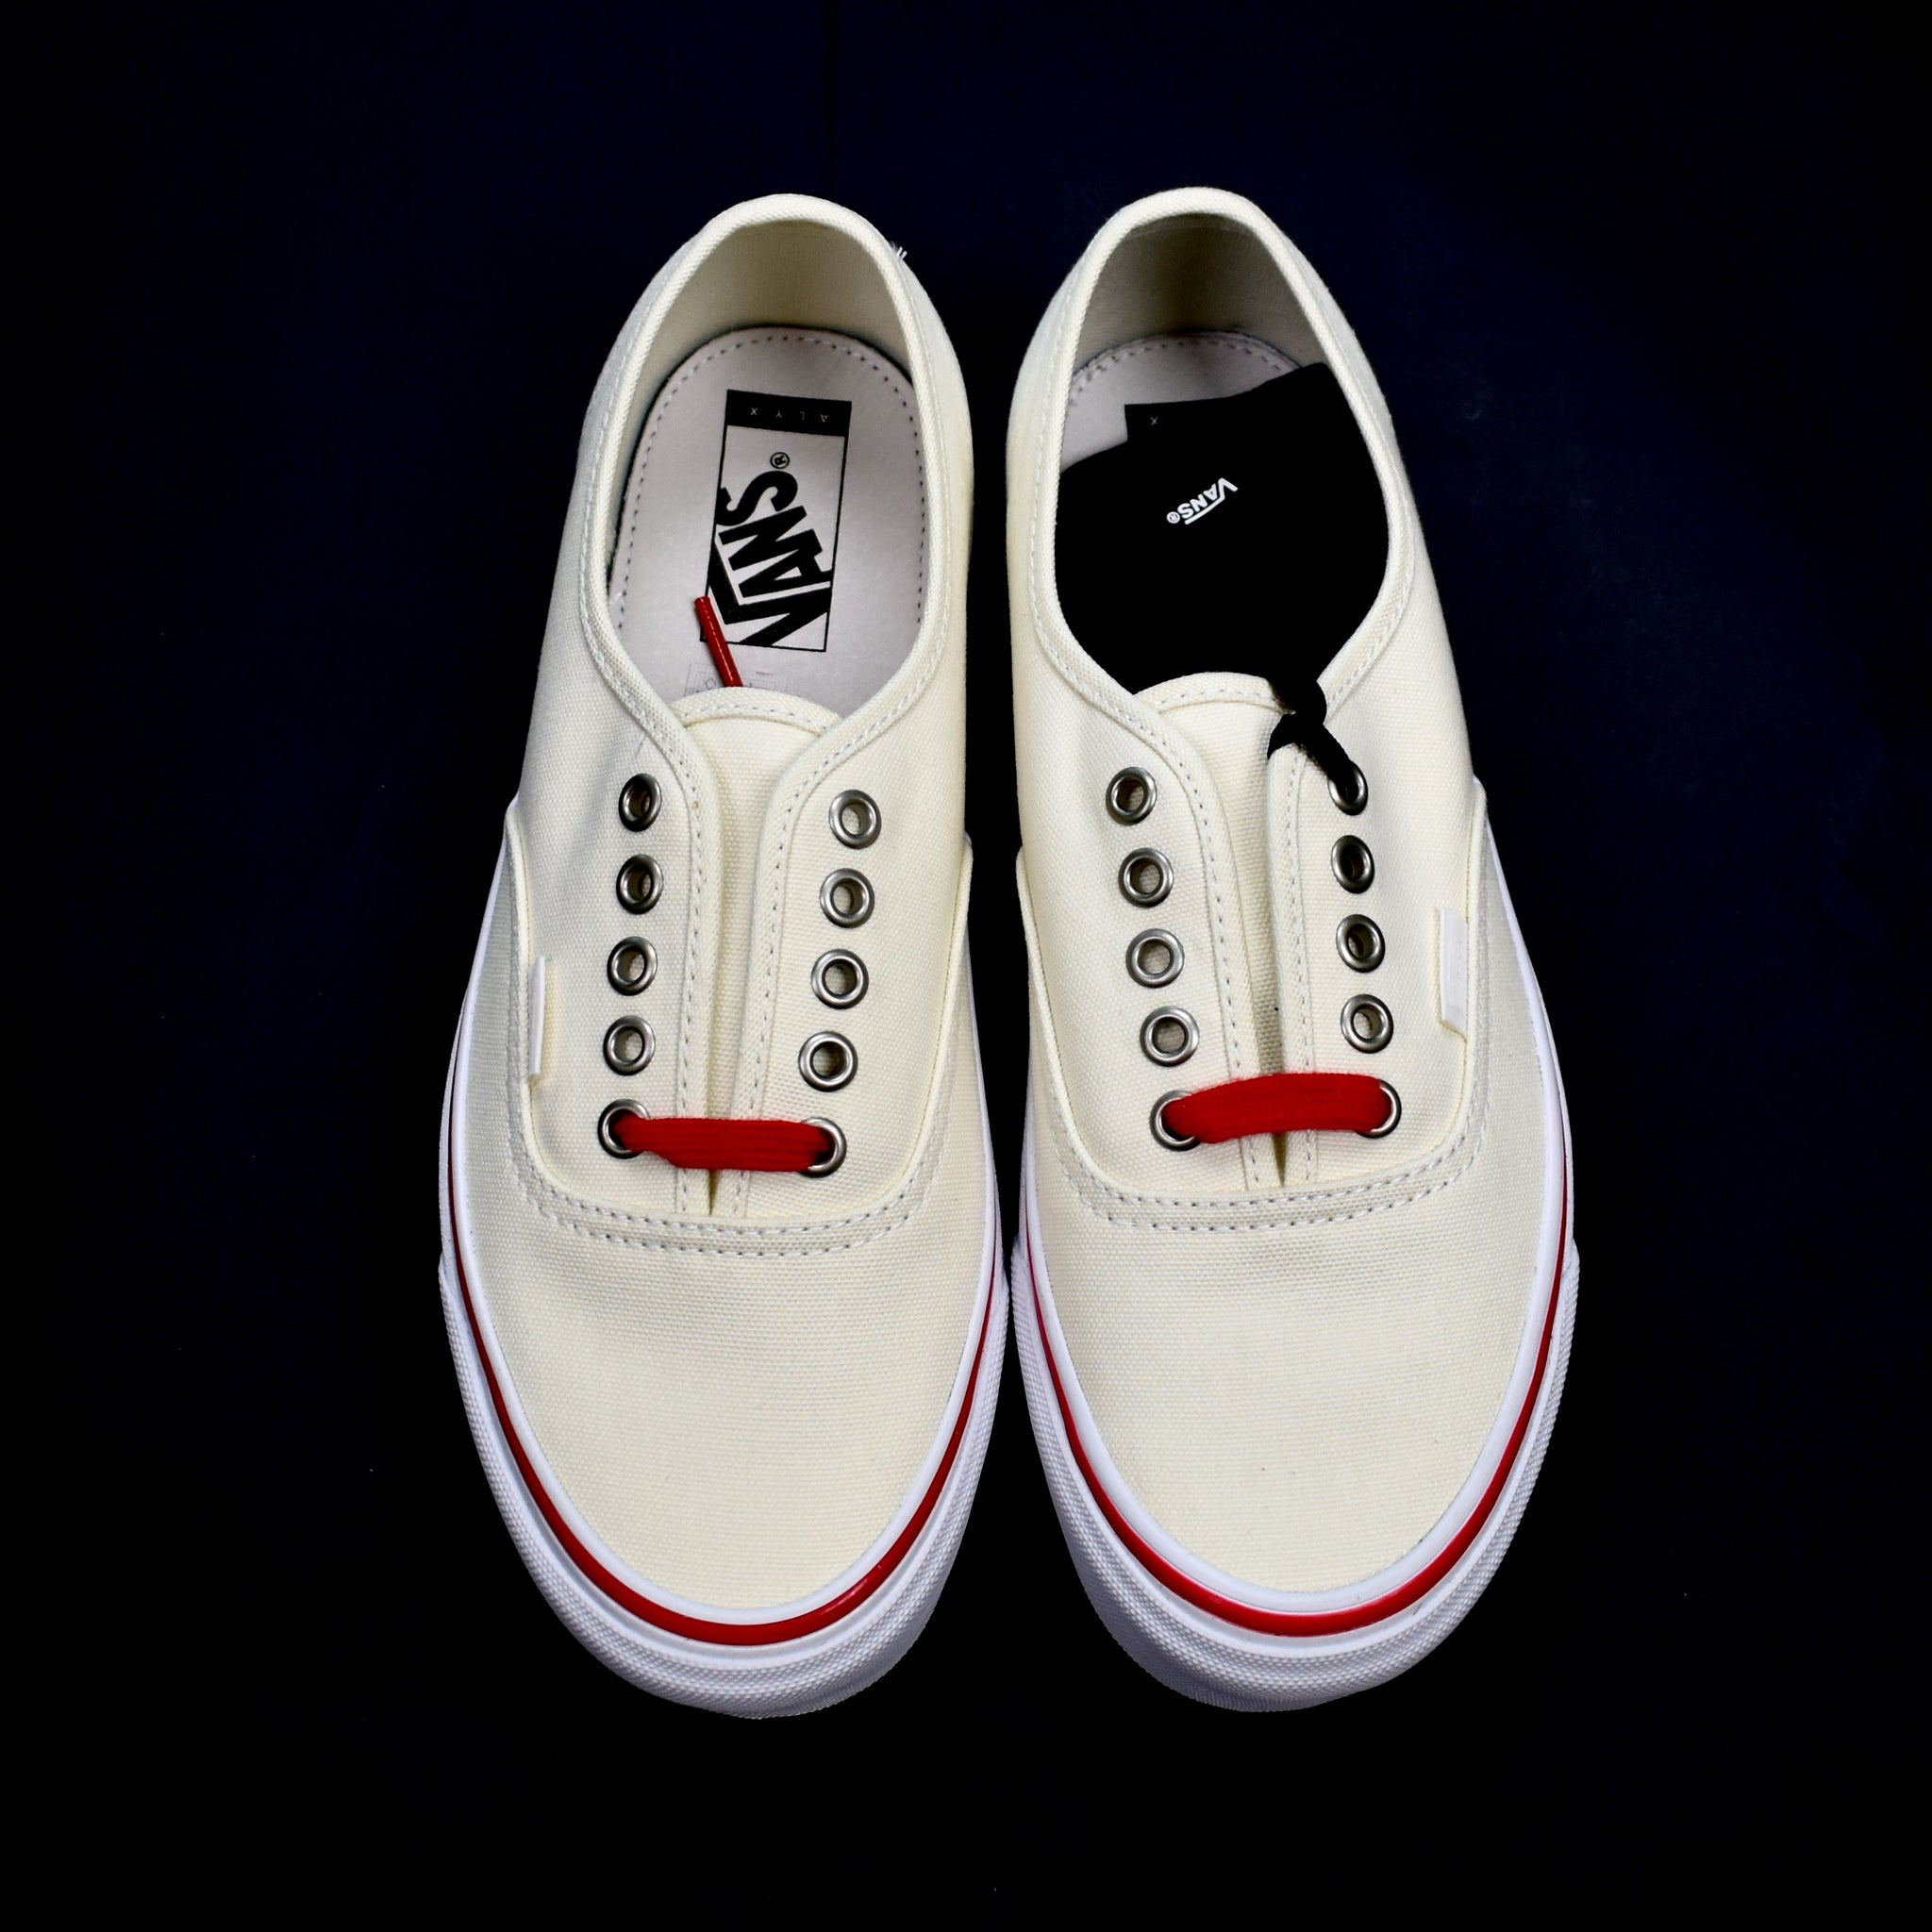 Alyx x Vans - OG Authentic LX (White/Red)